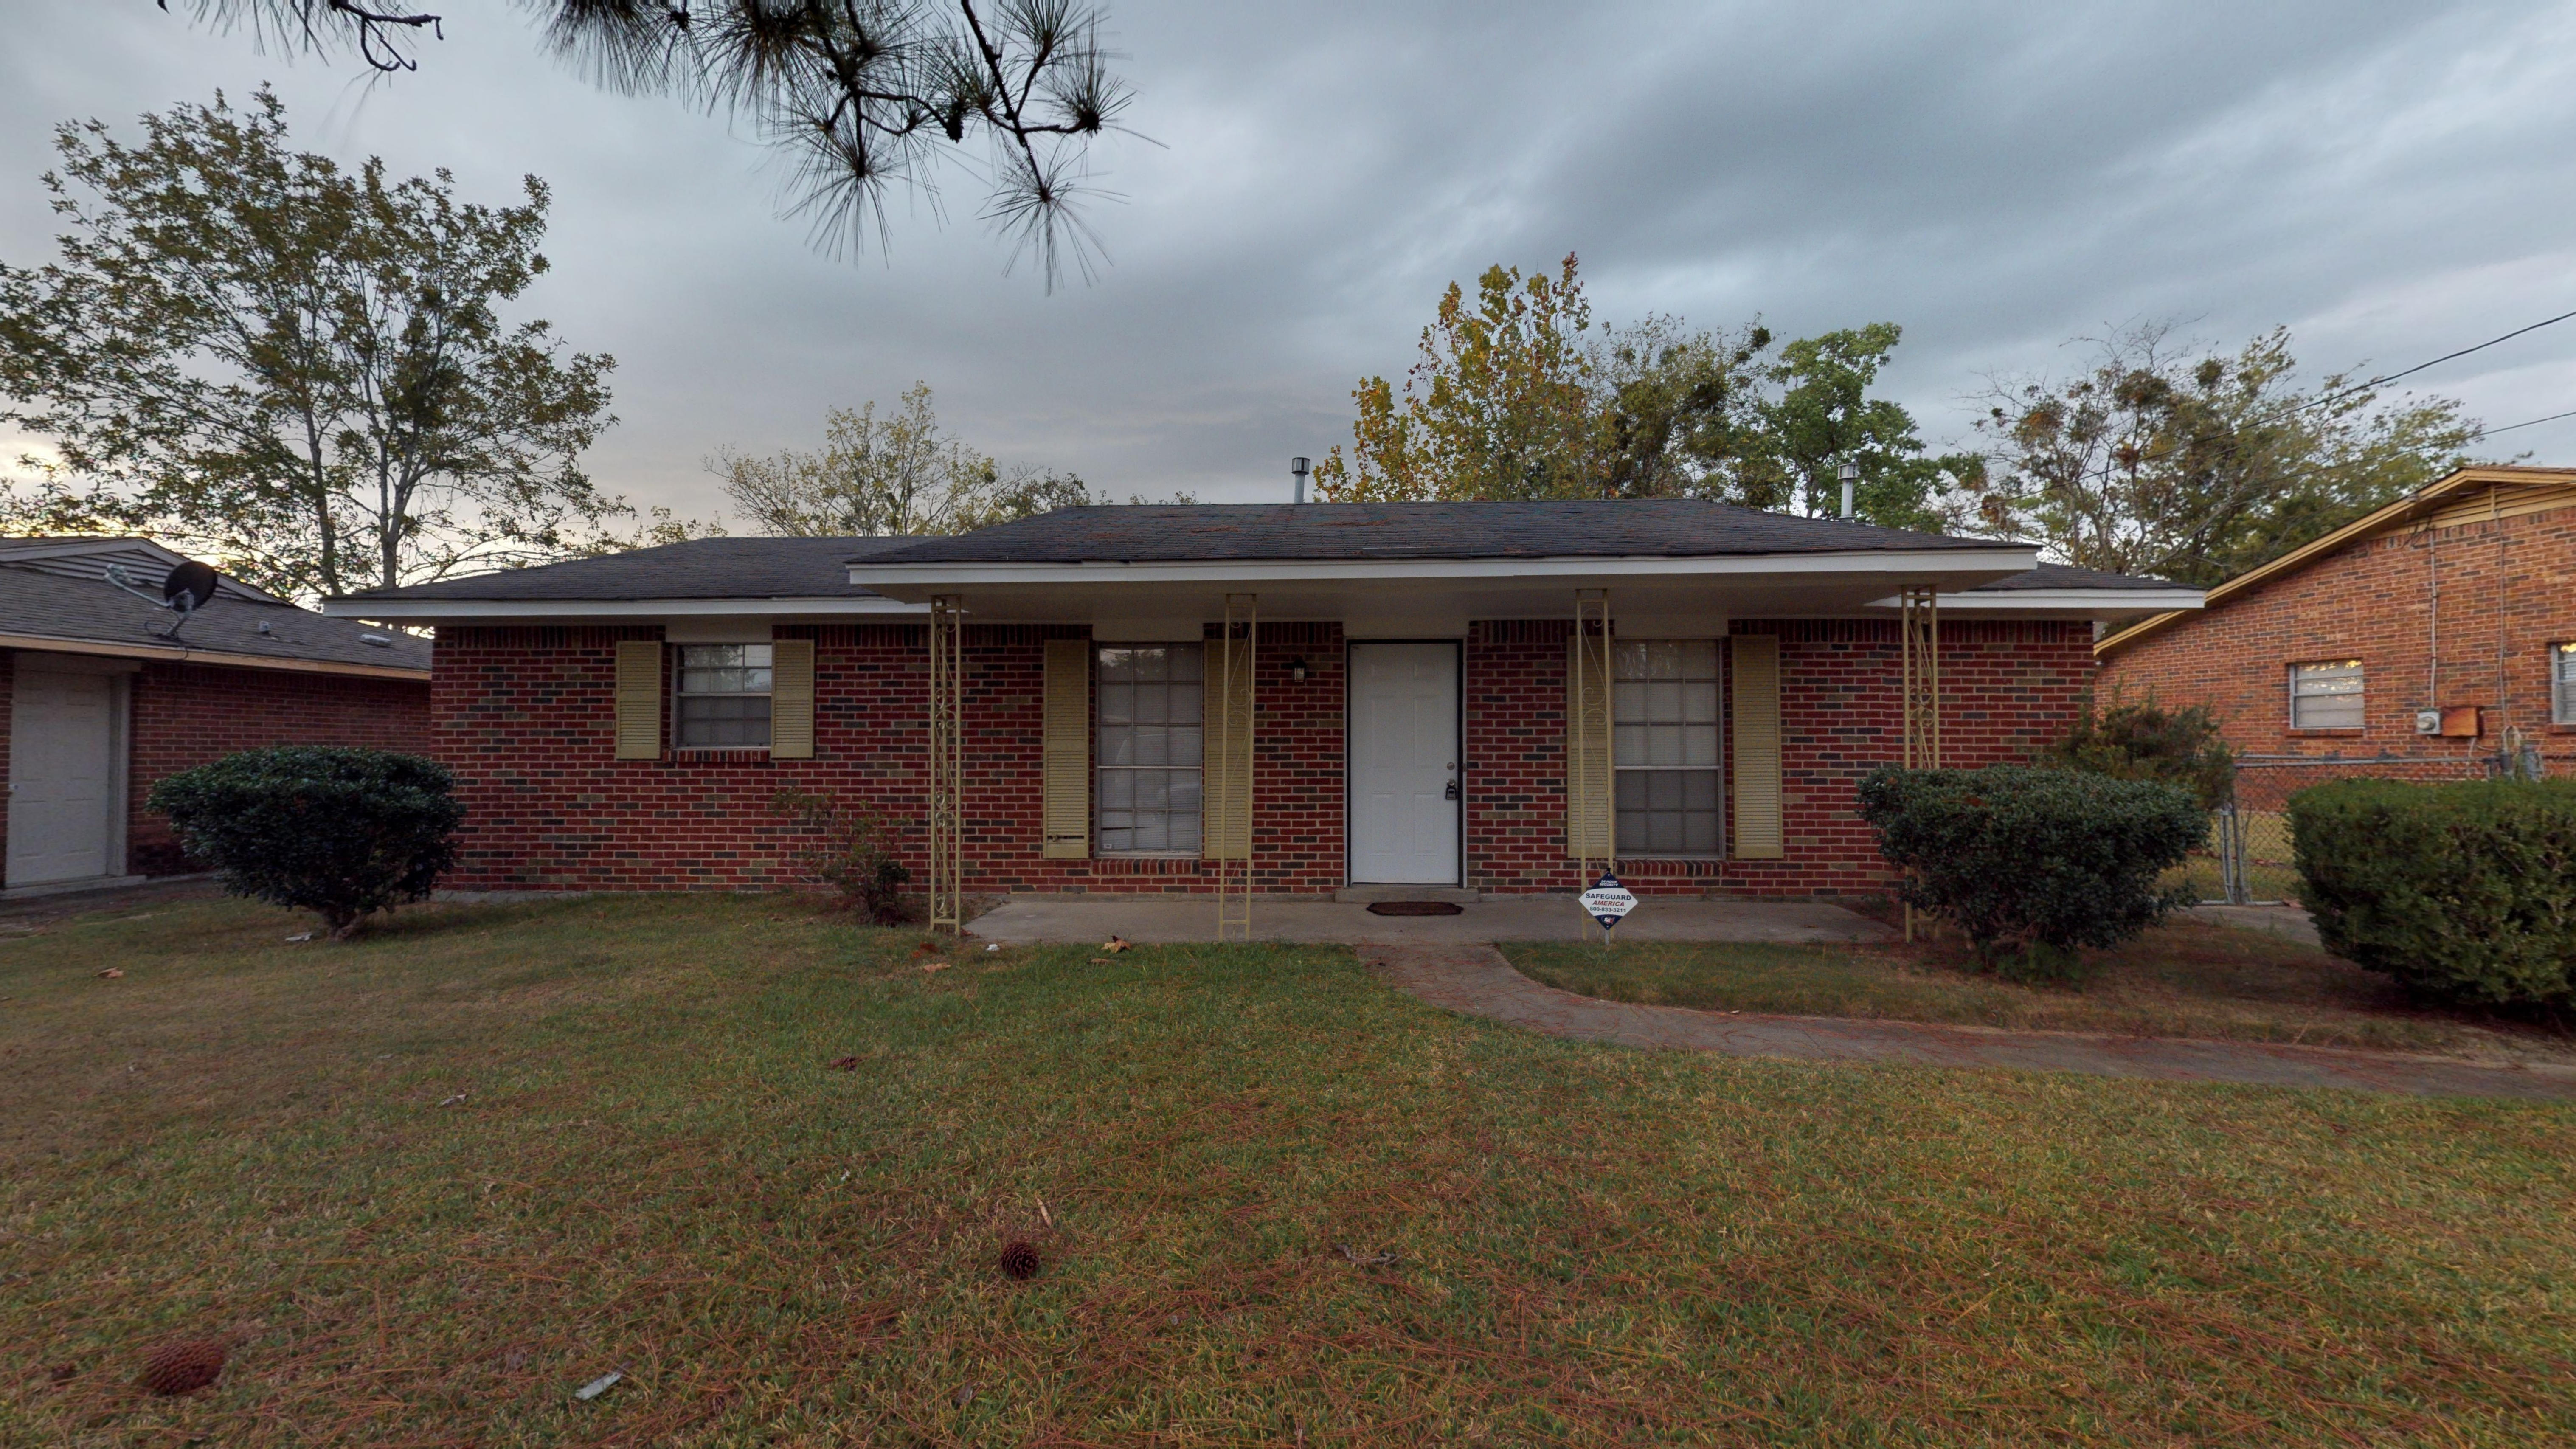 FOR RENT IN MONTGOMERY! 3 BED 2 BATH AT 4240 GREEN MEADOW DRIVE